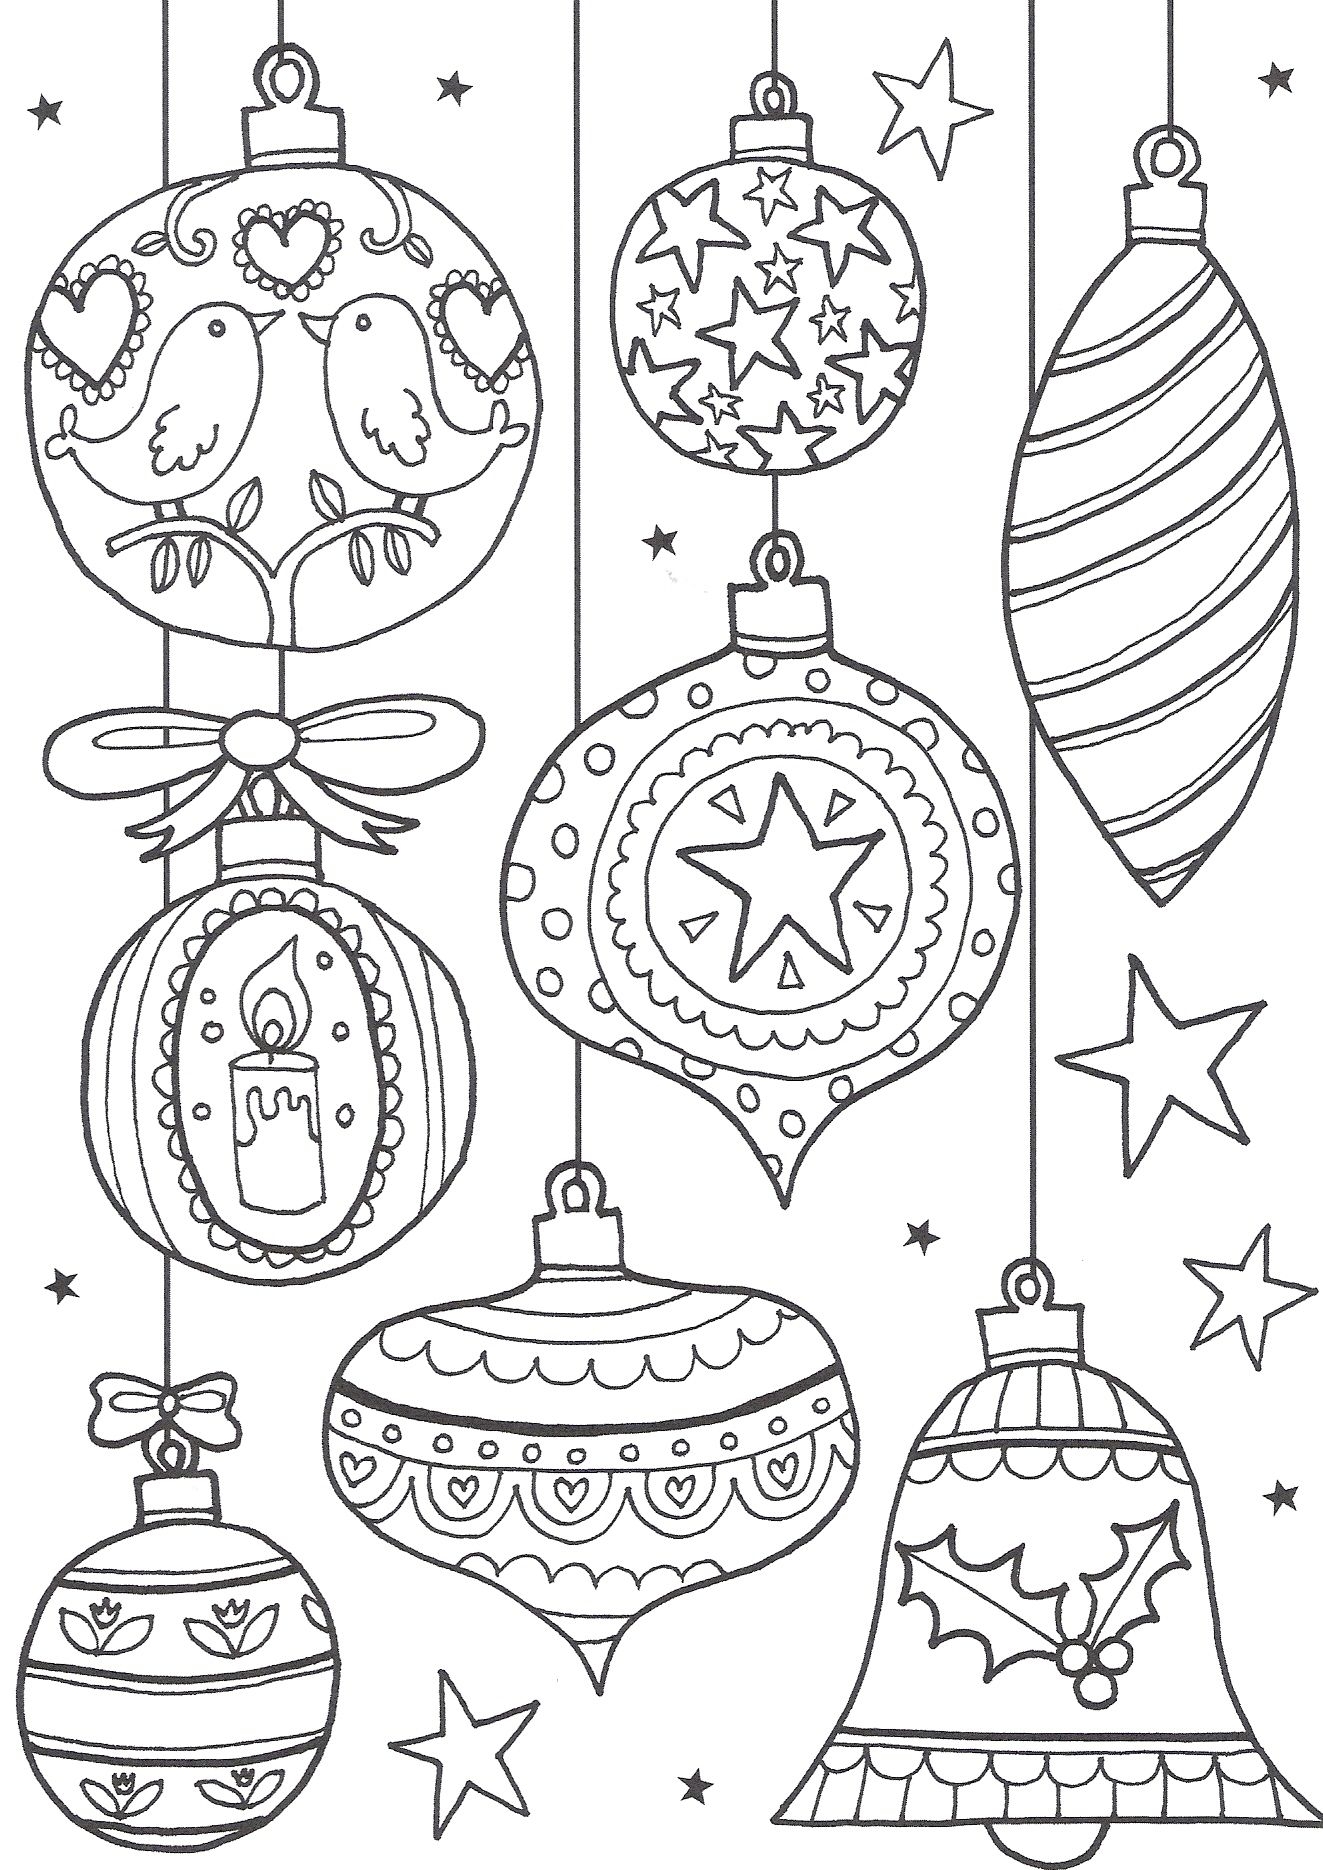 Printable Christmas Coloring Pages With Free Colouring For Adults The Ultimate Roundup